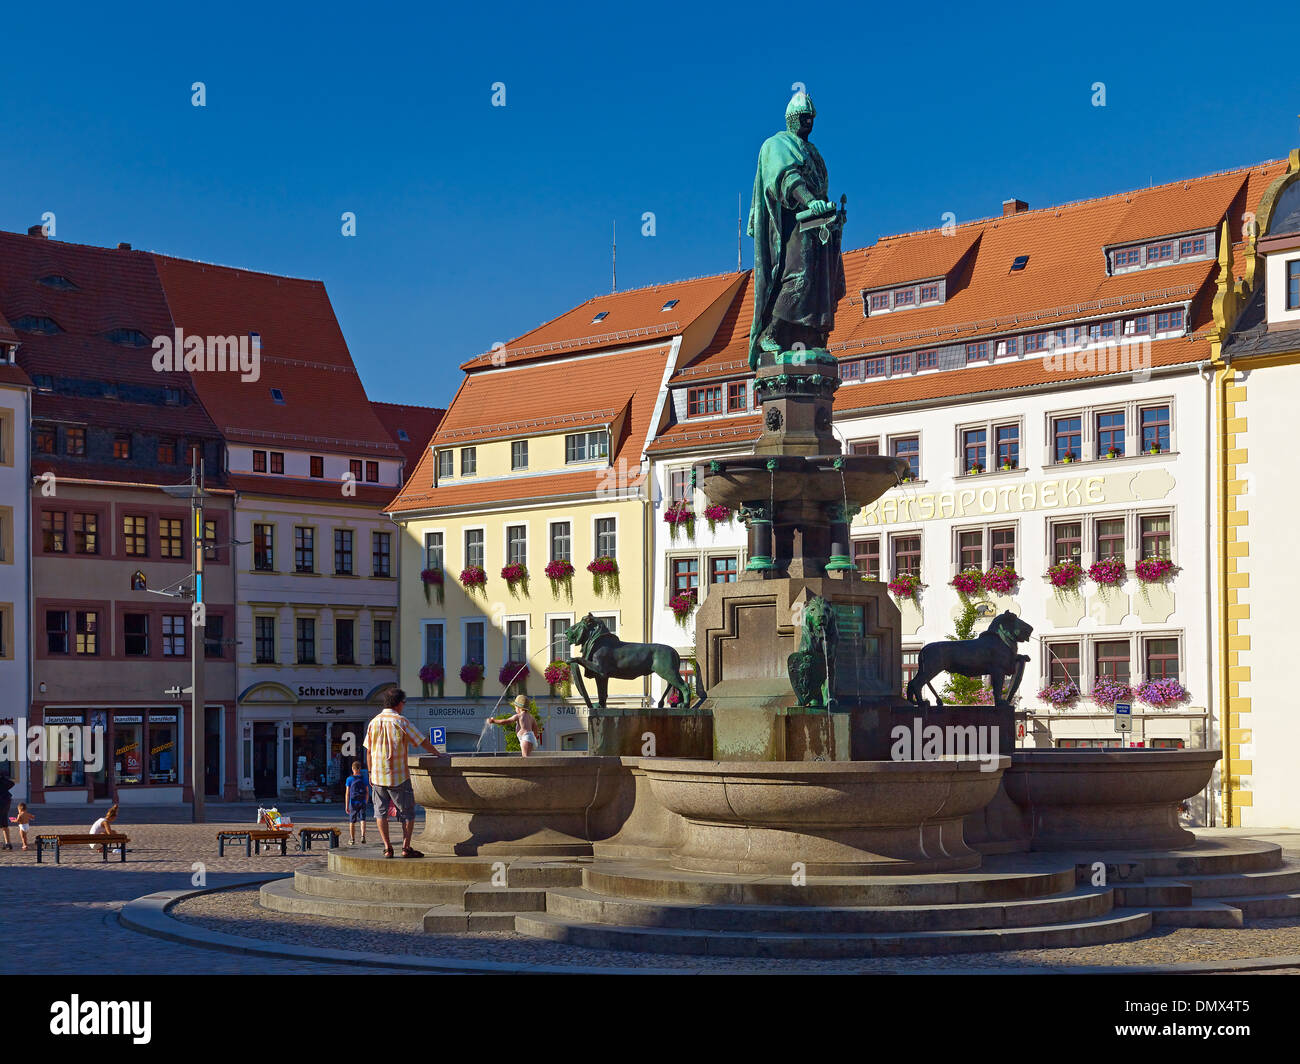 Obermarkt square and fountain with Otto II monument in Freiberg, Mittelsachsen District, Saxony, Germany - Stock Image